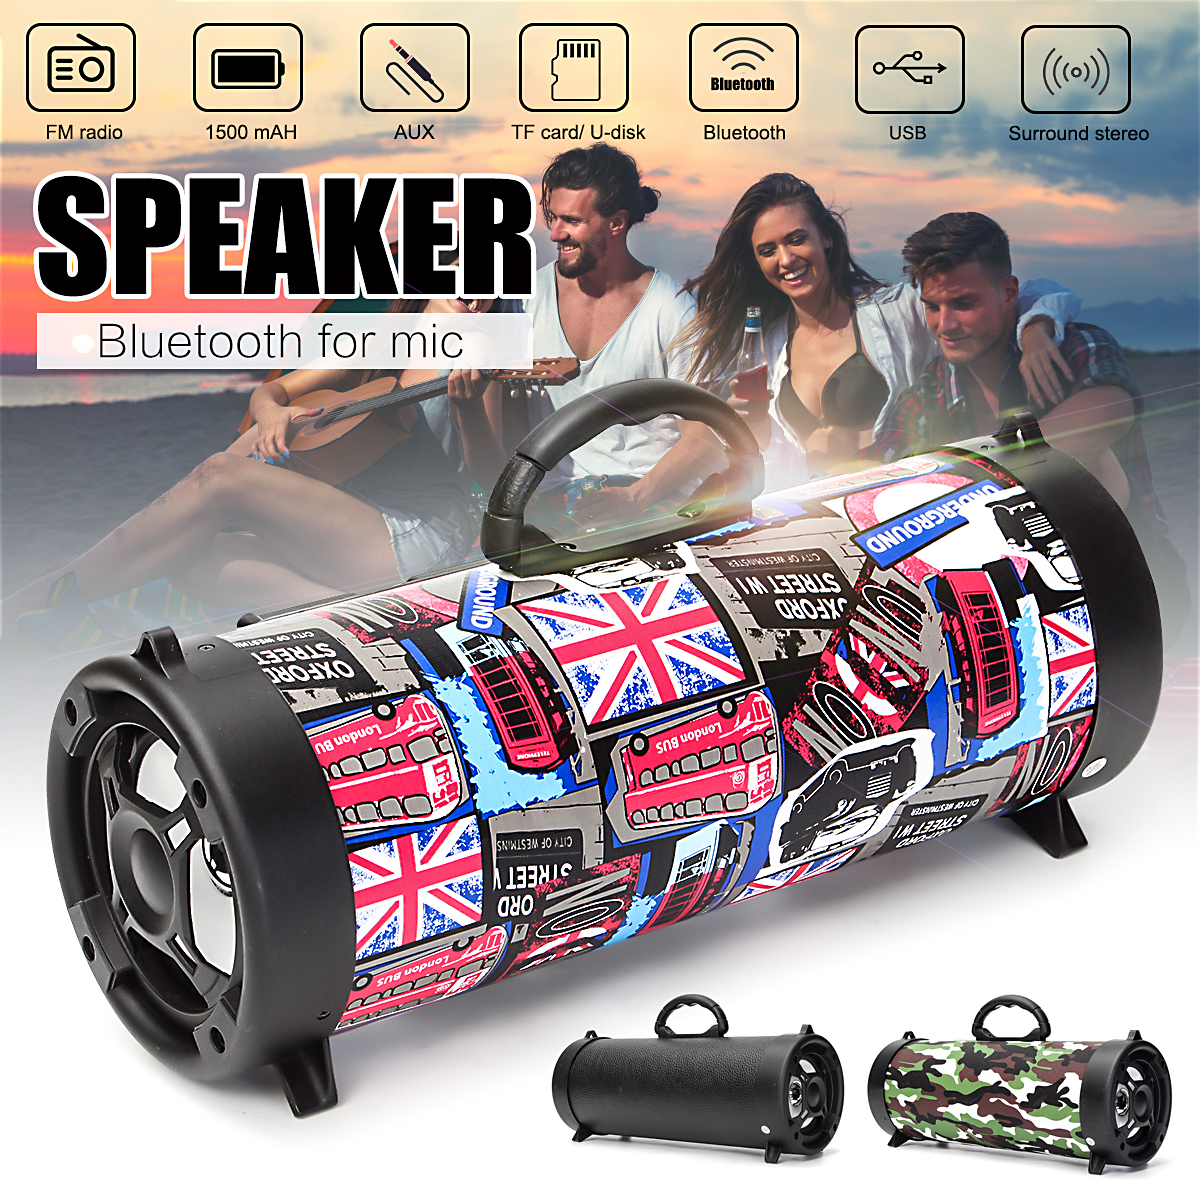 5W Wireless Bluetooth Speaker Outdoor HIFI Subwoofer Speaker USB AUX TF FM Radio Stereo Loudspeaker Bass MP3 Player Mobile Phone 25w wireless bluetooth speaker stereo bass portable loudspeaker sound system aux usb tf card fm radio outdoor speaker subwoofer